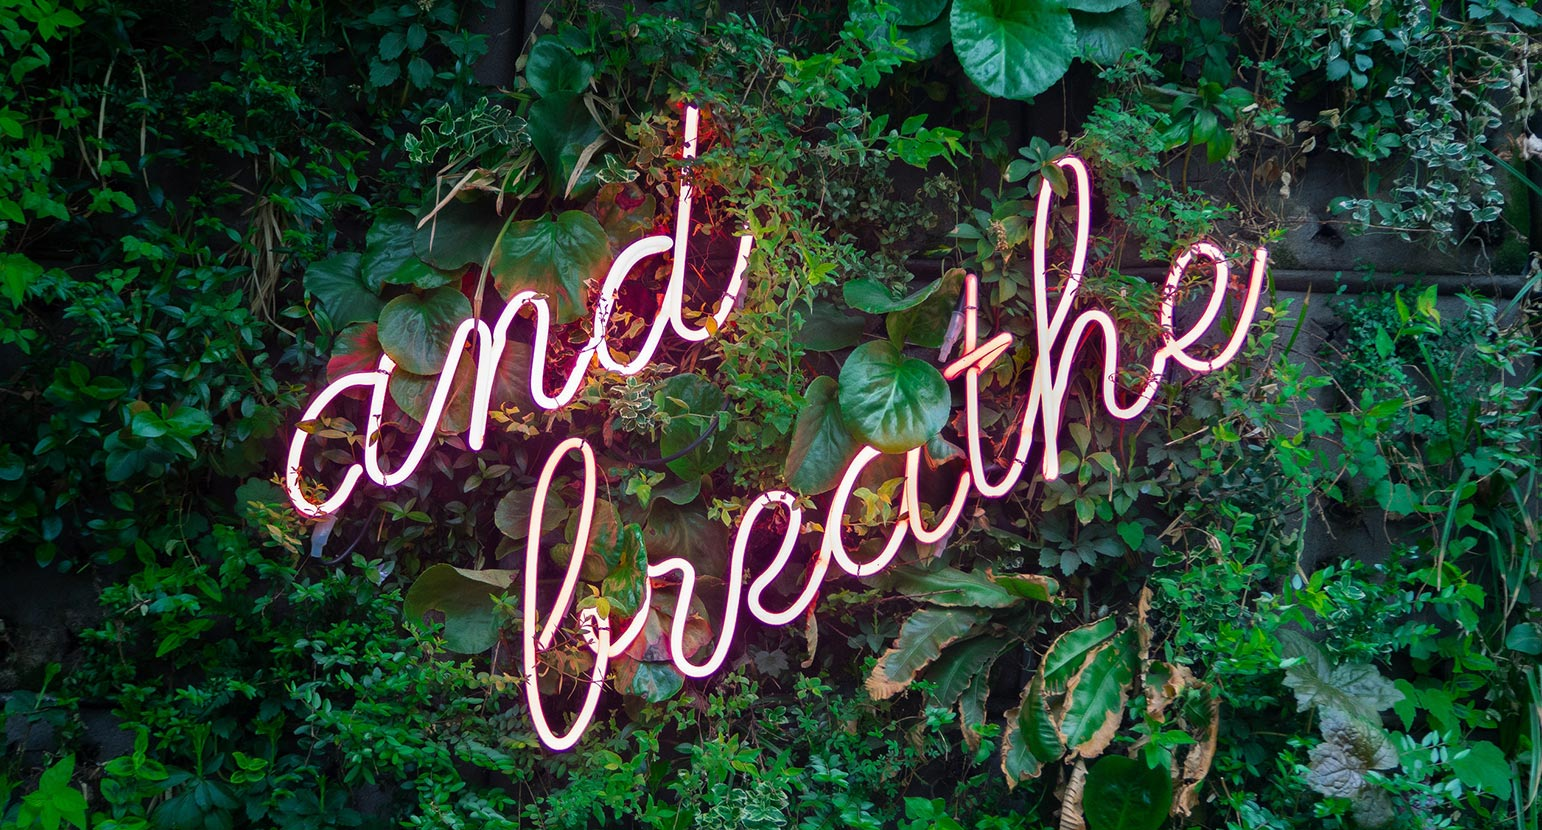 Neon sign 'And Breathe' on green leafy background.